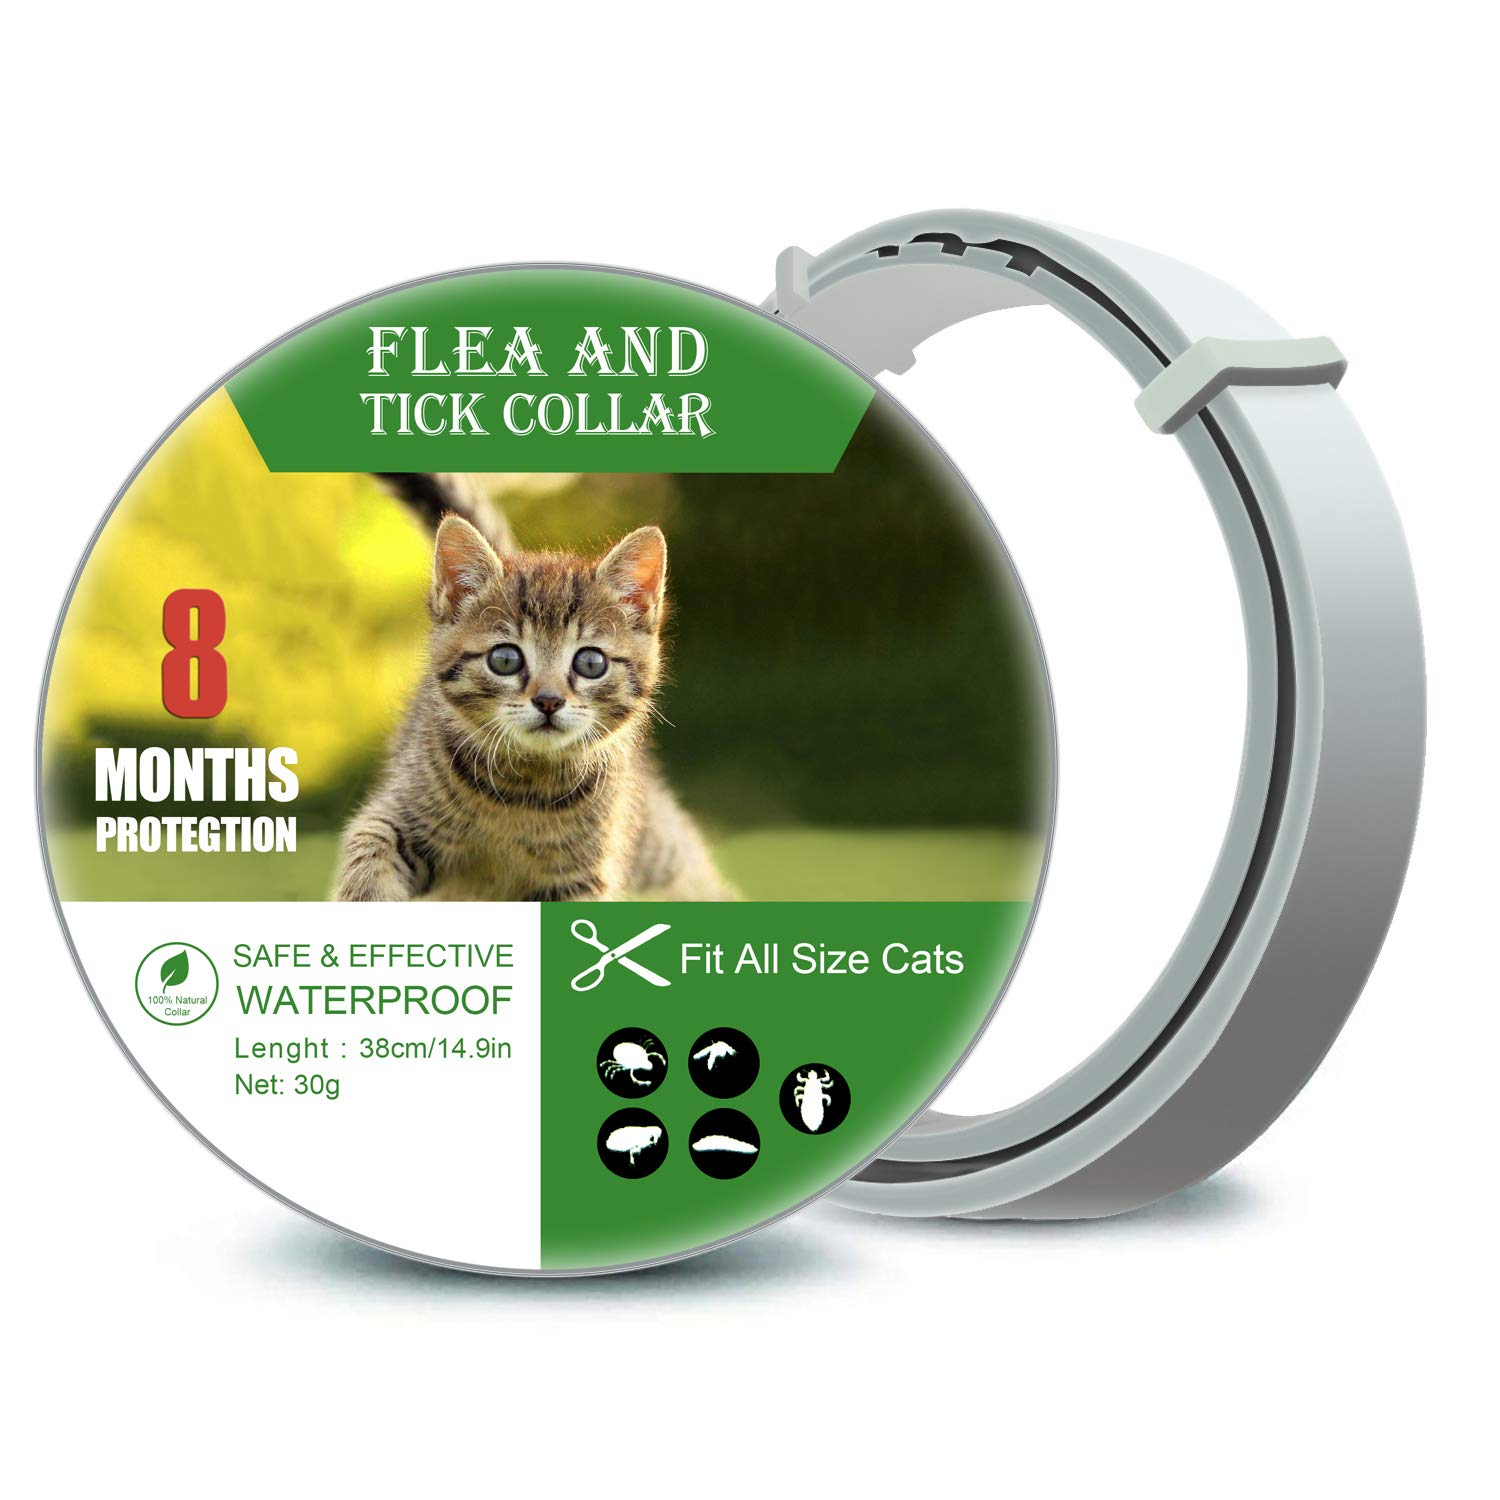 Colleen-Meloff Contral Cat Collar for Cats Up to 8 Months Protection -b2 by Colleen-Meloff